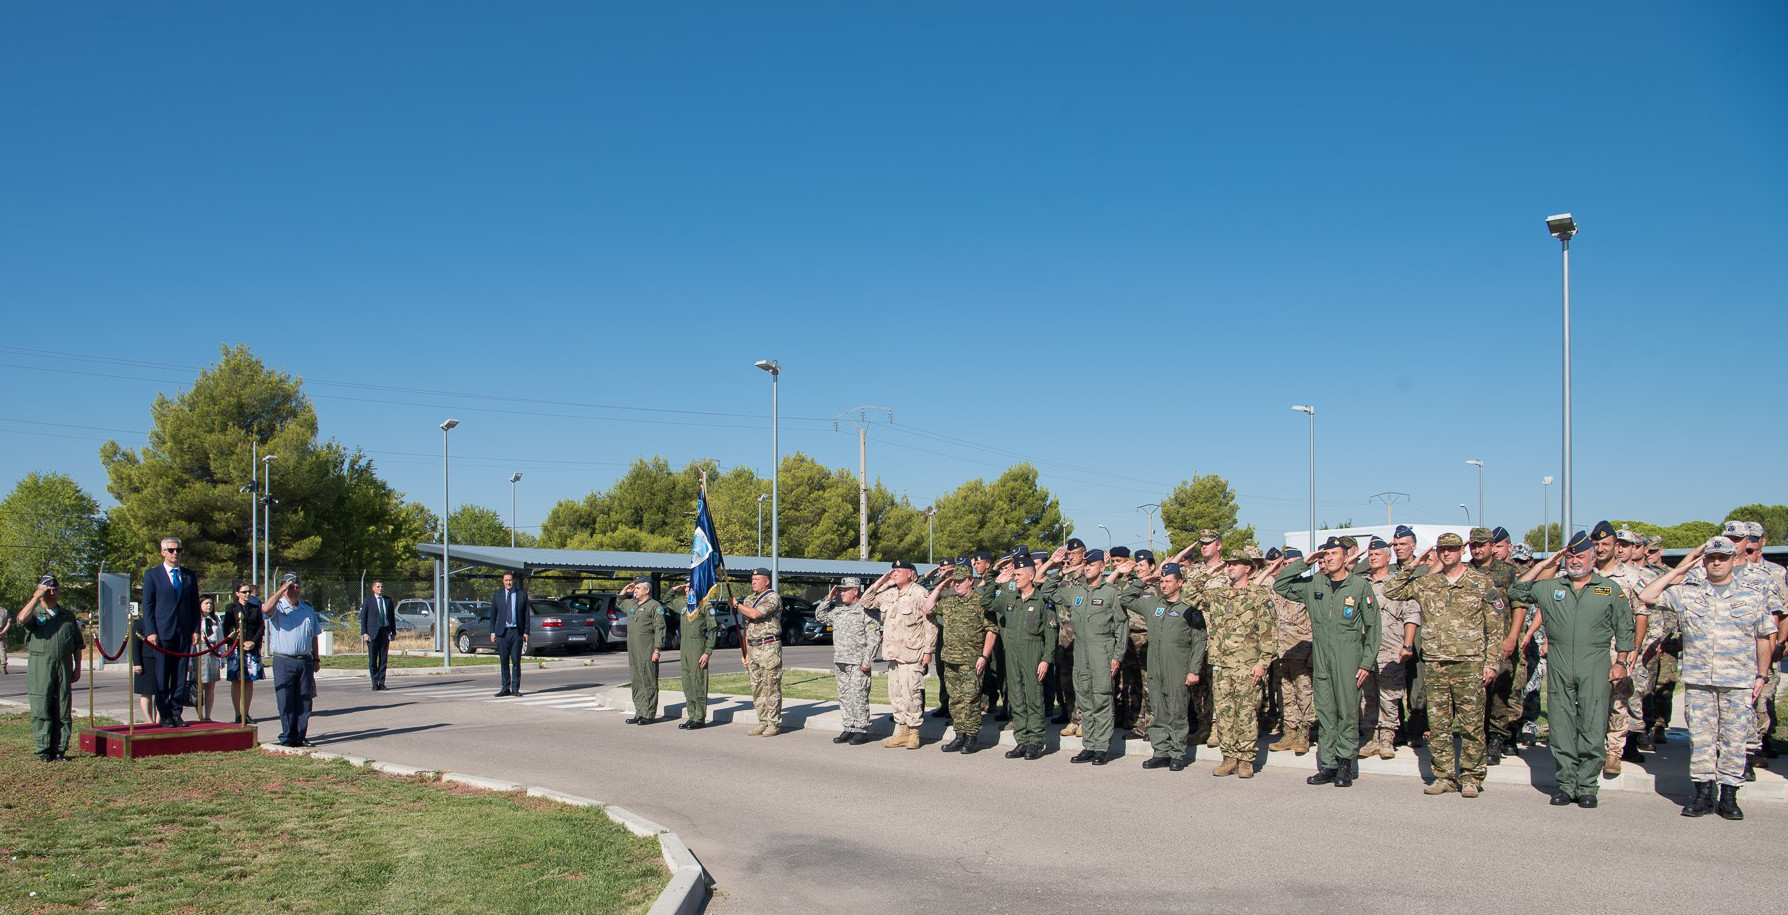 The Latvian Minister of Defence visits the Combined Air Operations Centre in Torrejón